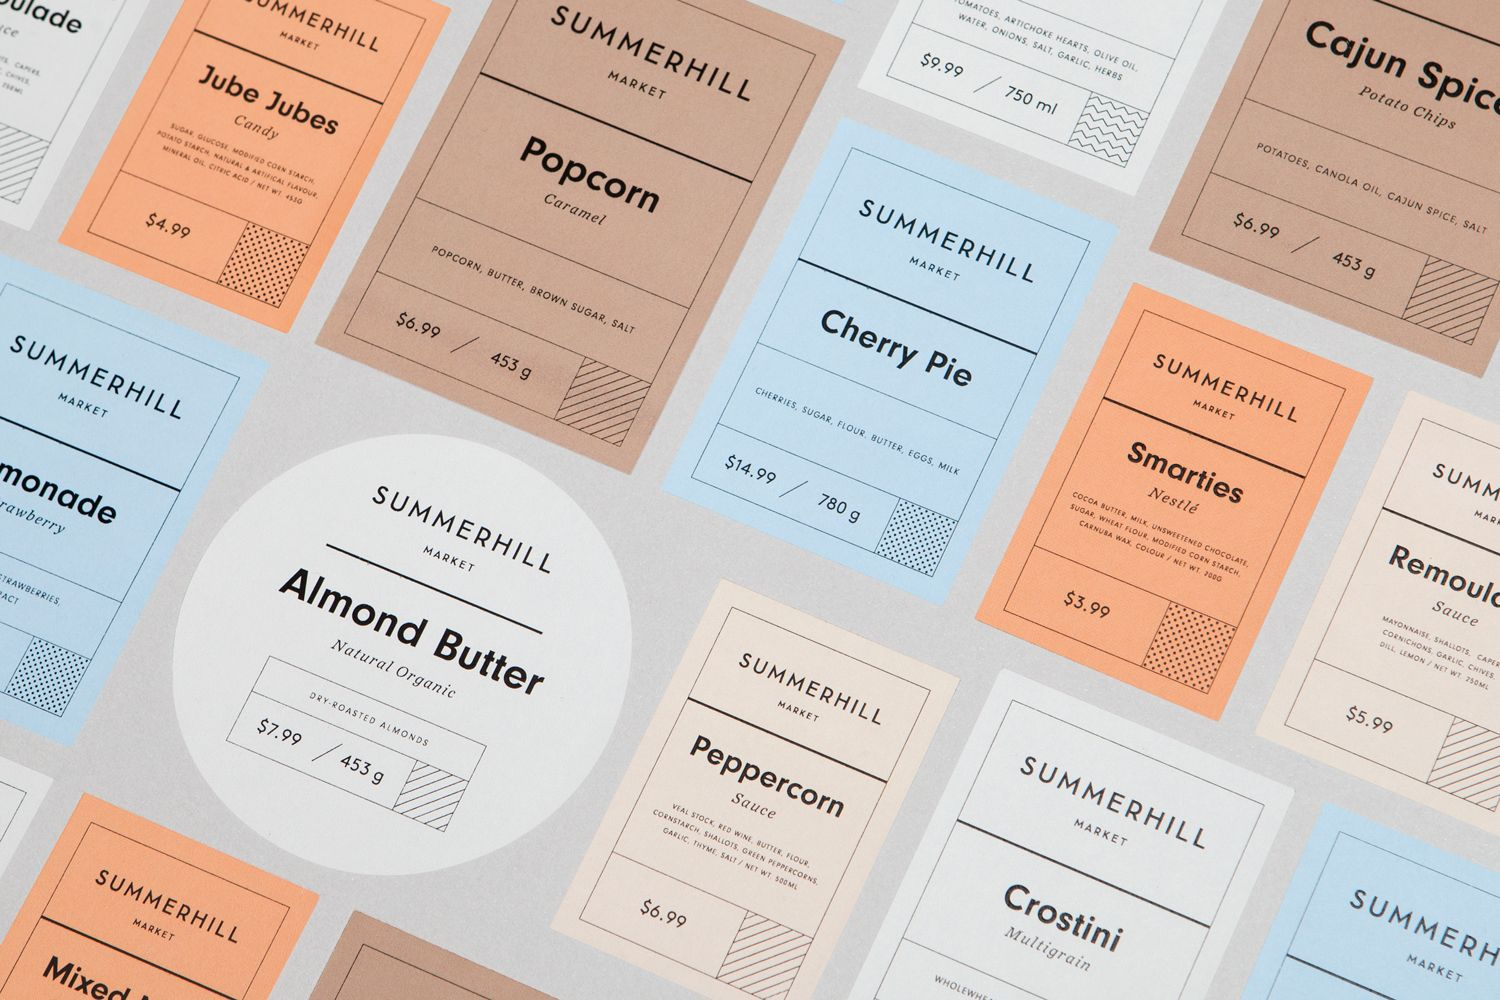 Summerhill Market by Blok, Canada. #branding #supermarket #labels